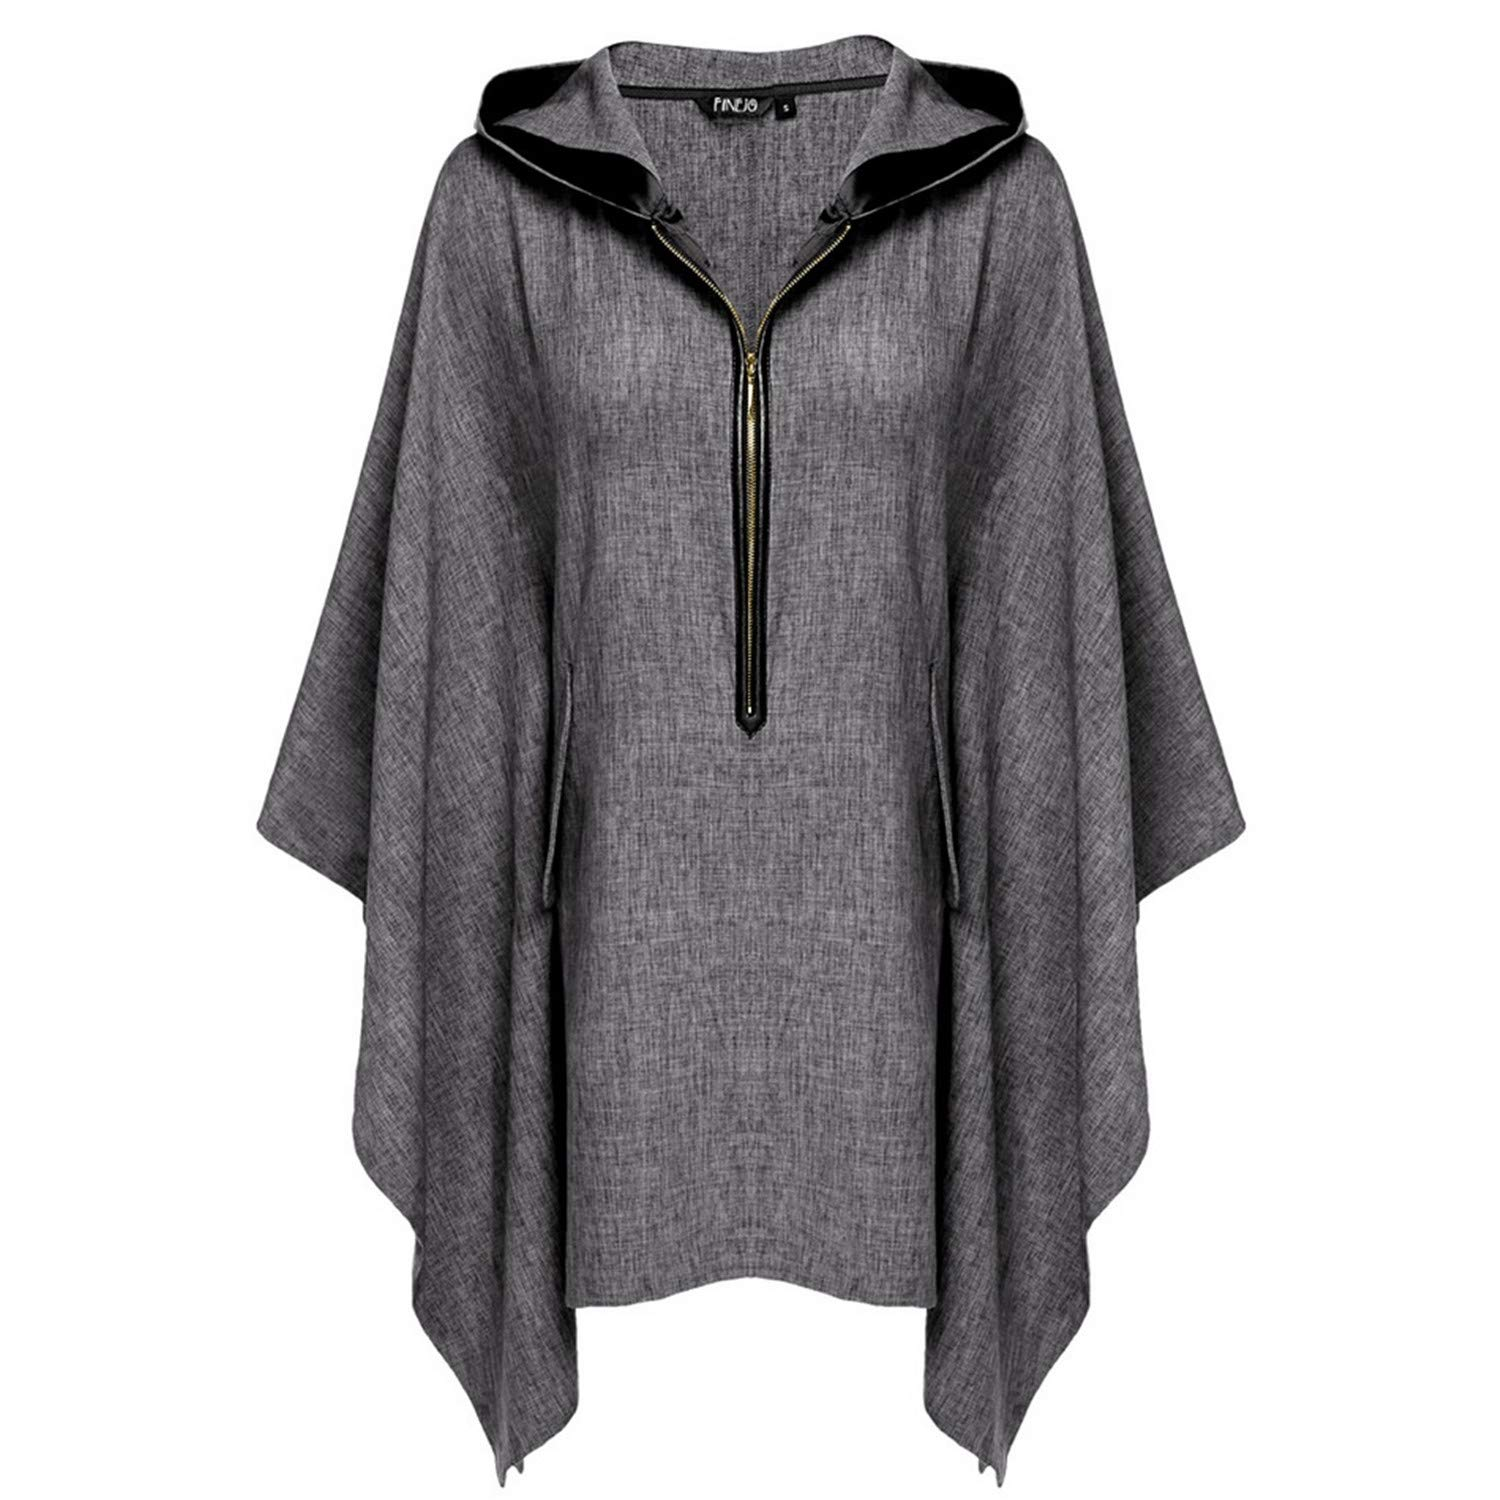 Kongsta Women Fashion Casual Loose Hooded 3 4 Raglan Sleeve Zip Up Pullover  Solid Cape Outwear at Amazon Women s Clothing store  692a19954